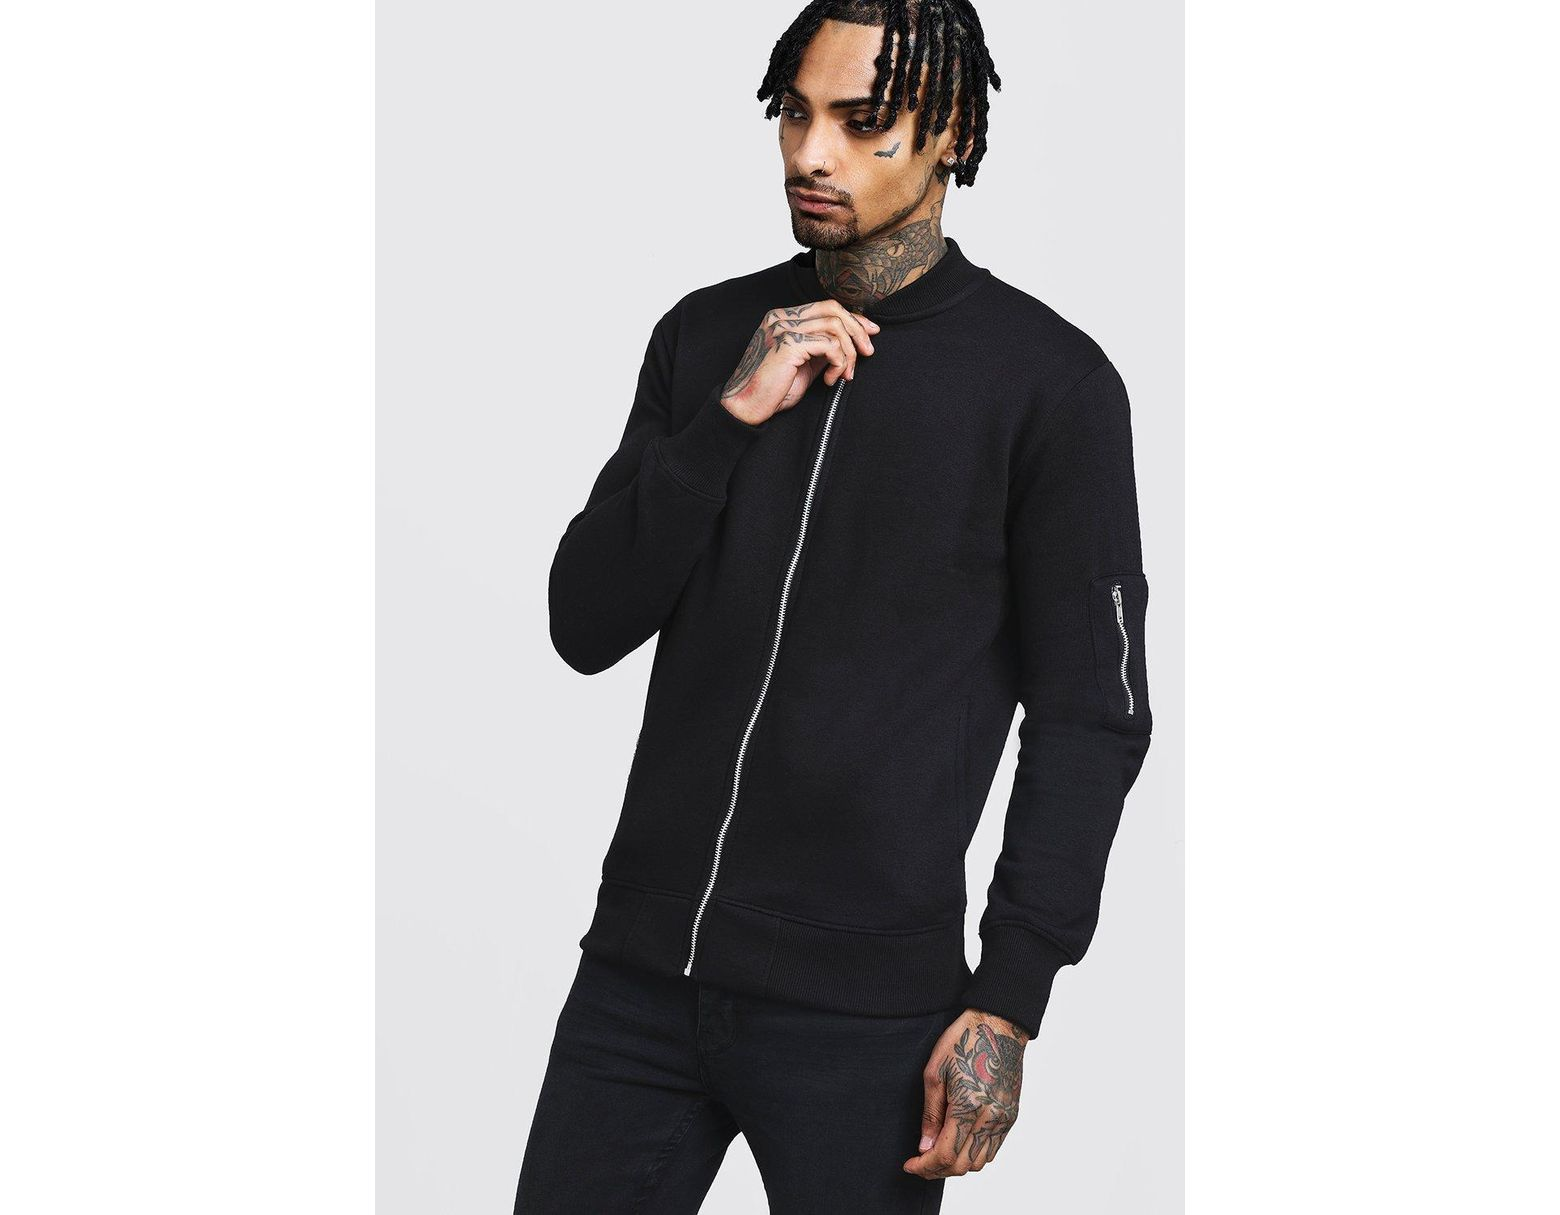 bb191e9acfb55 Boohoo Jersey Ma1 Bomber Jacket in Black for Men - Lyst